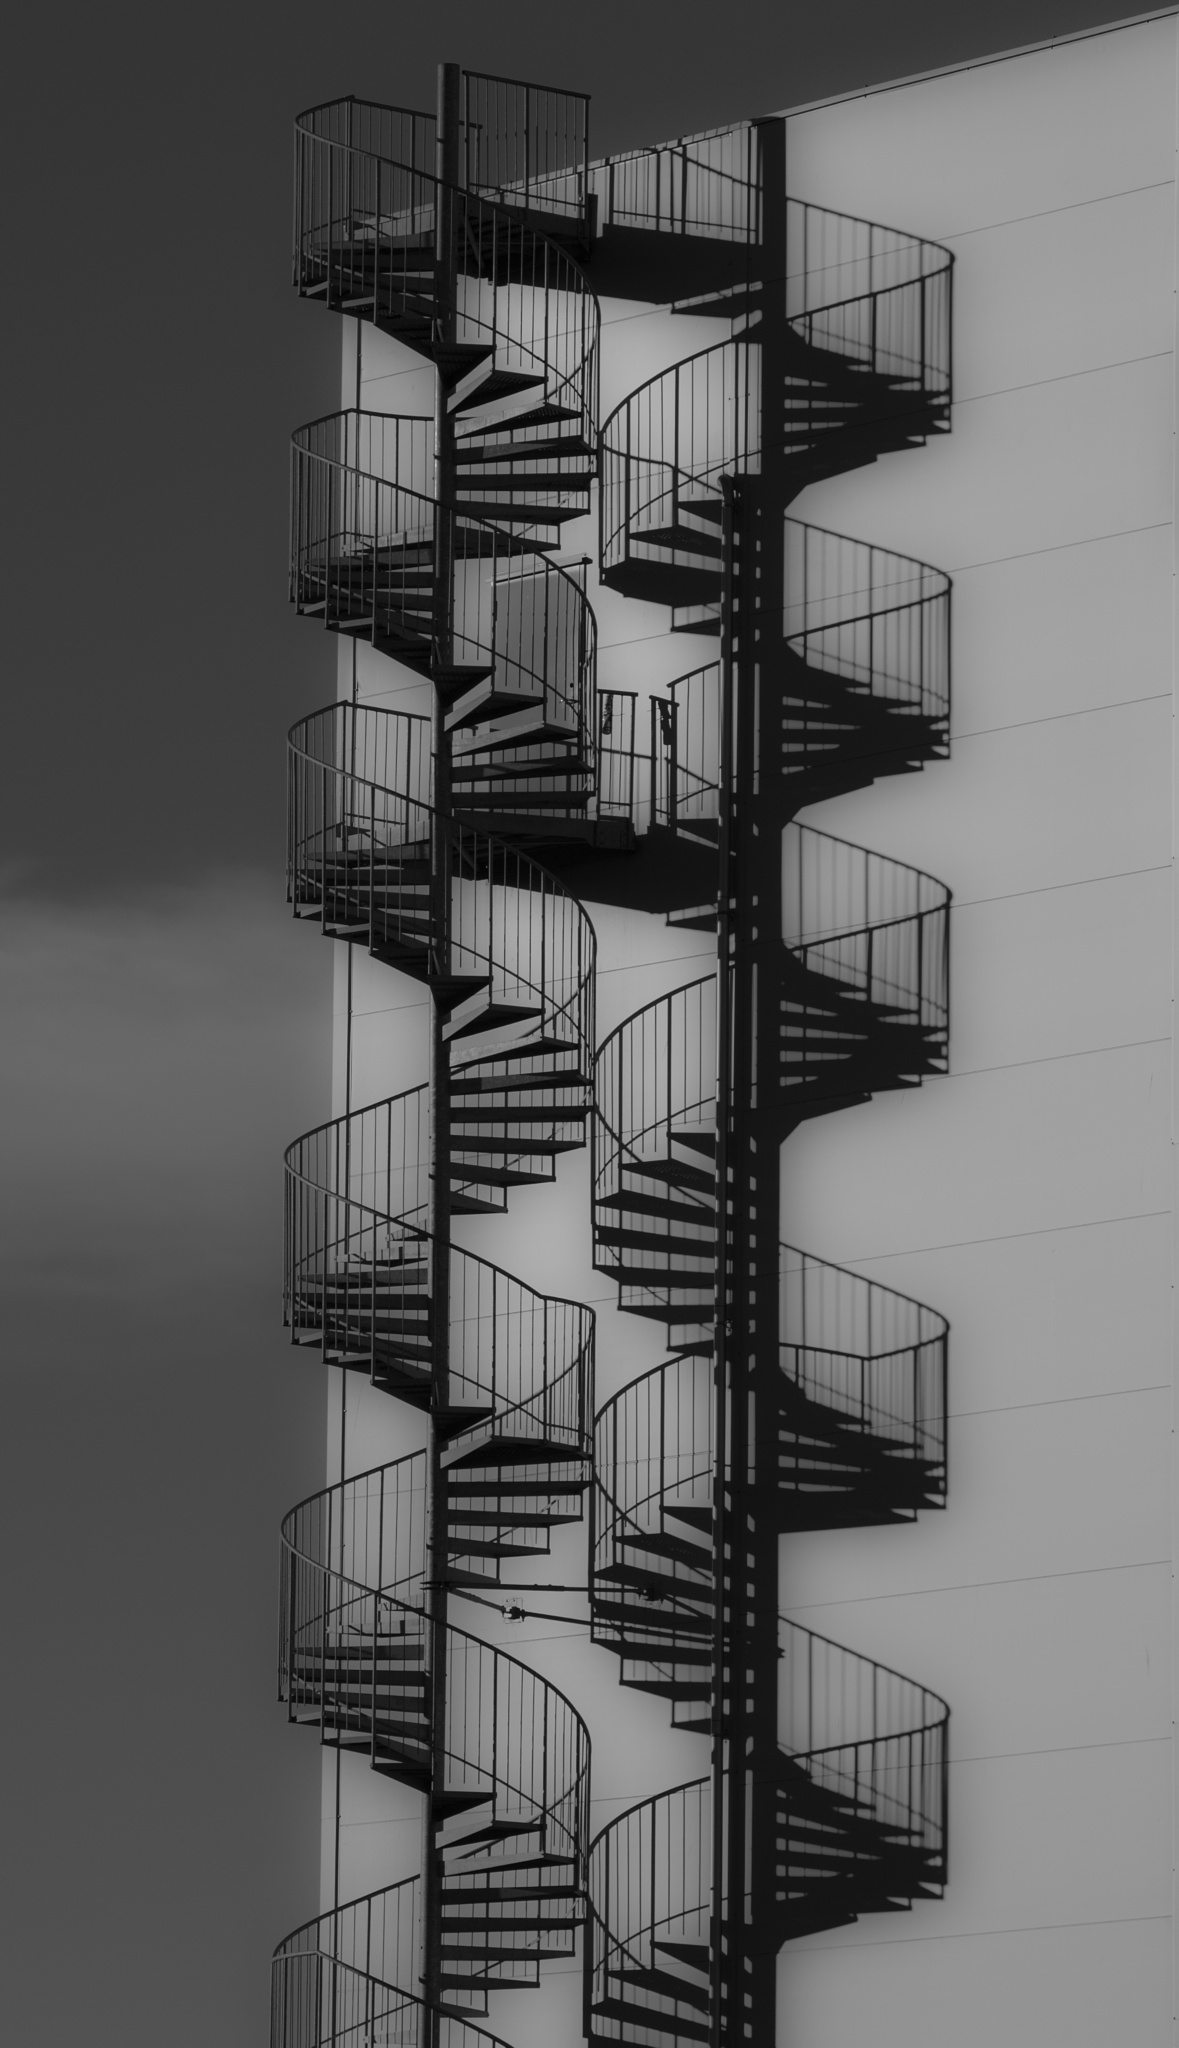 stairs by Tommy Lund